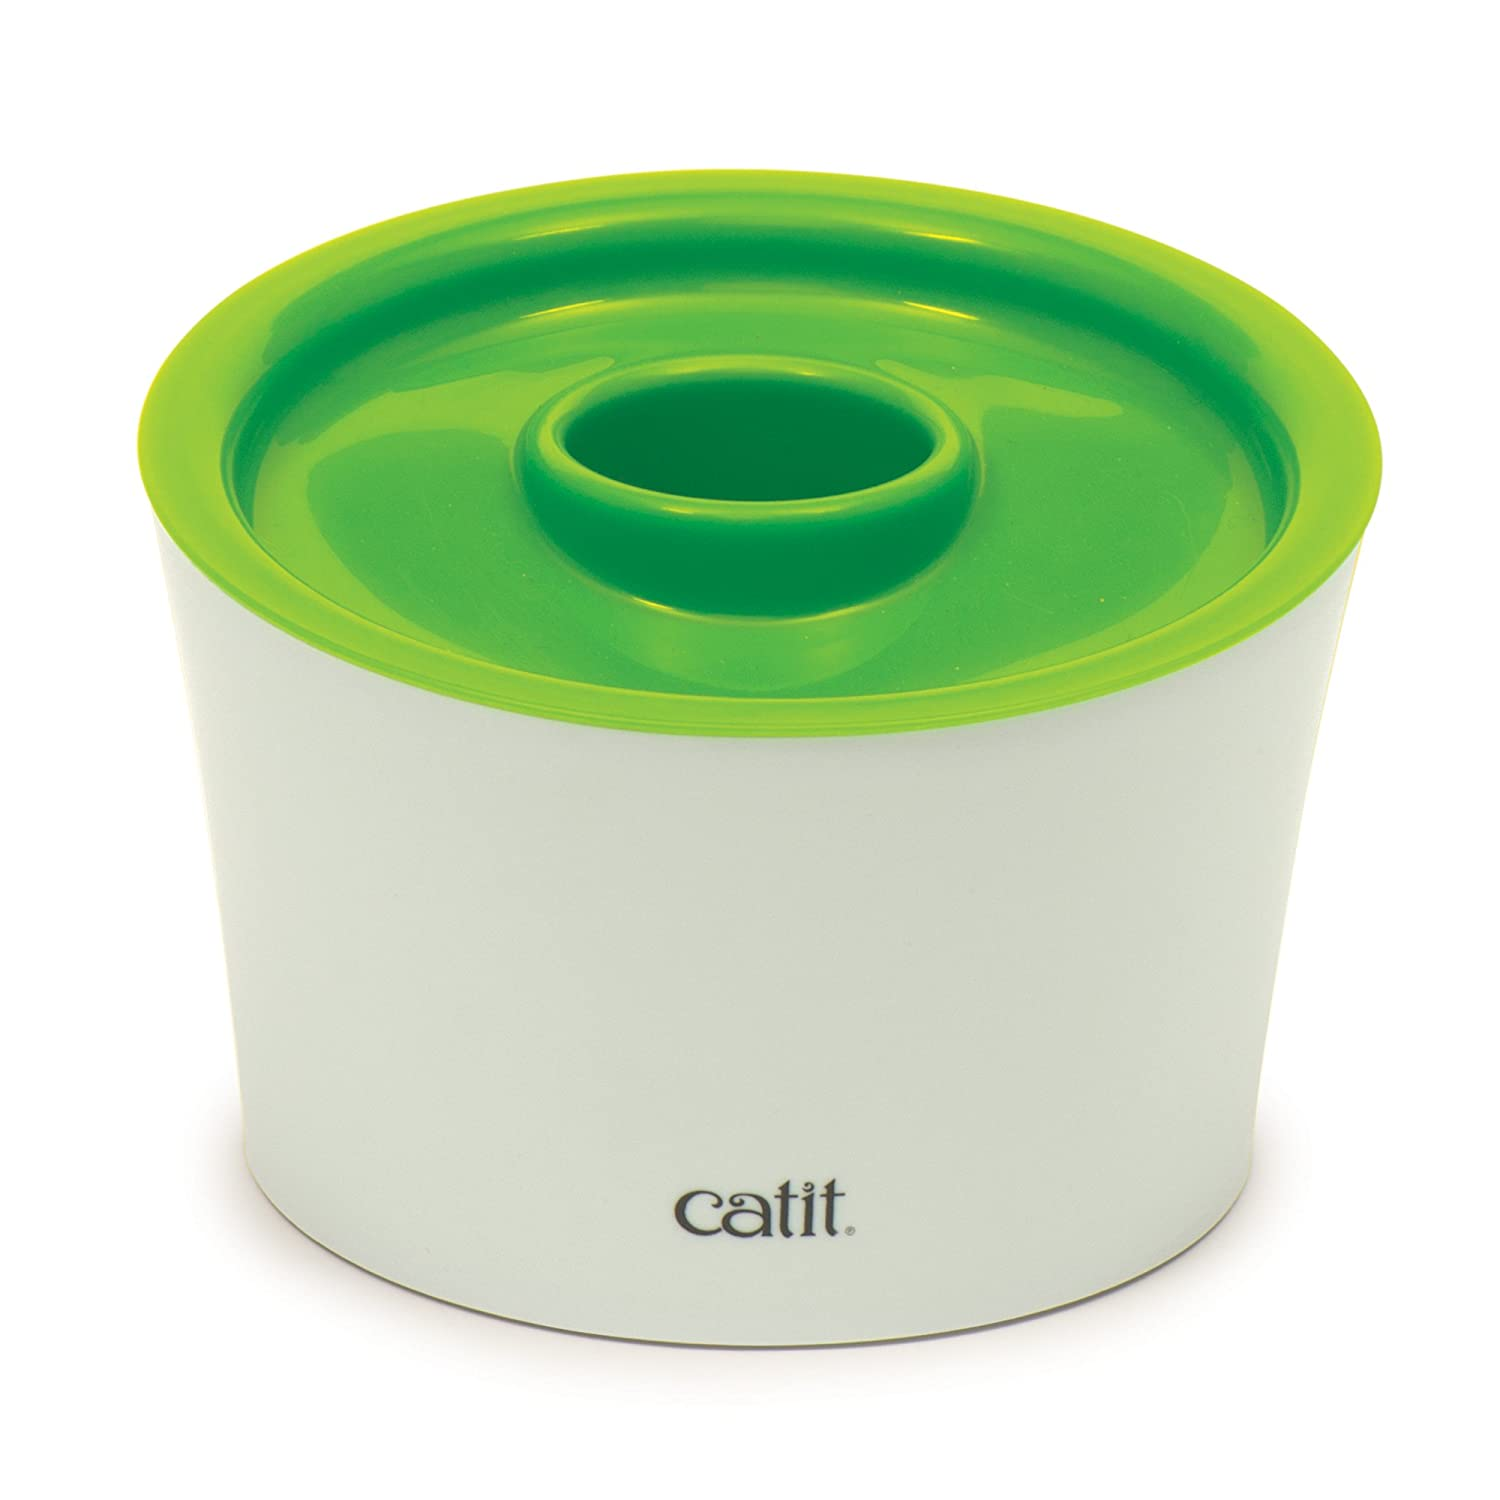 Cat it Senses 2.0 Distributeur de Nourriture pour Chat Catit 43741W